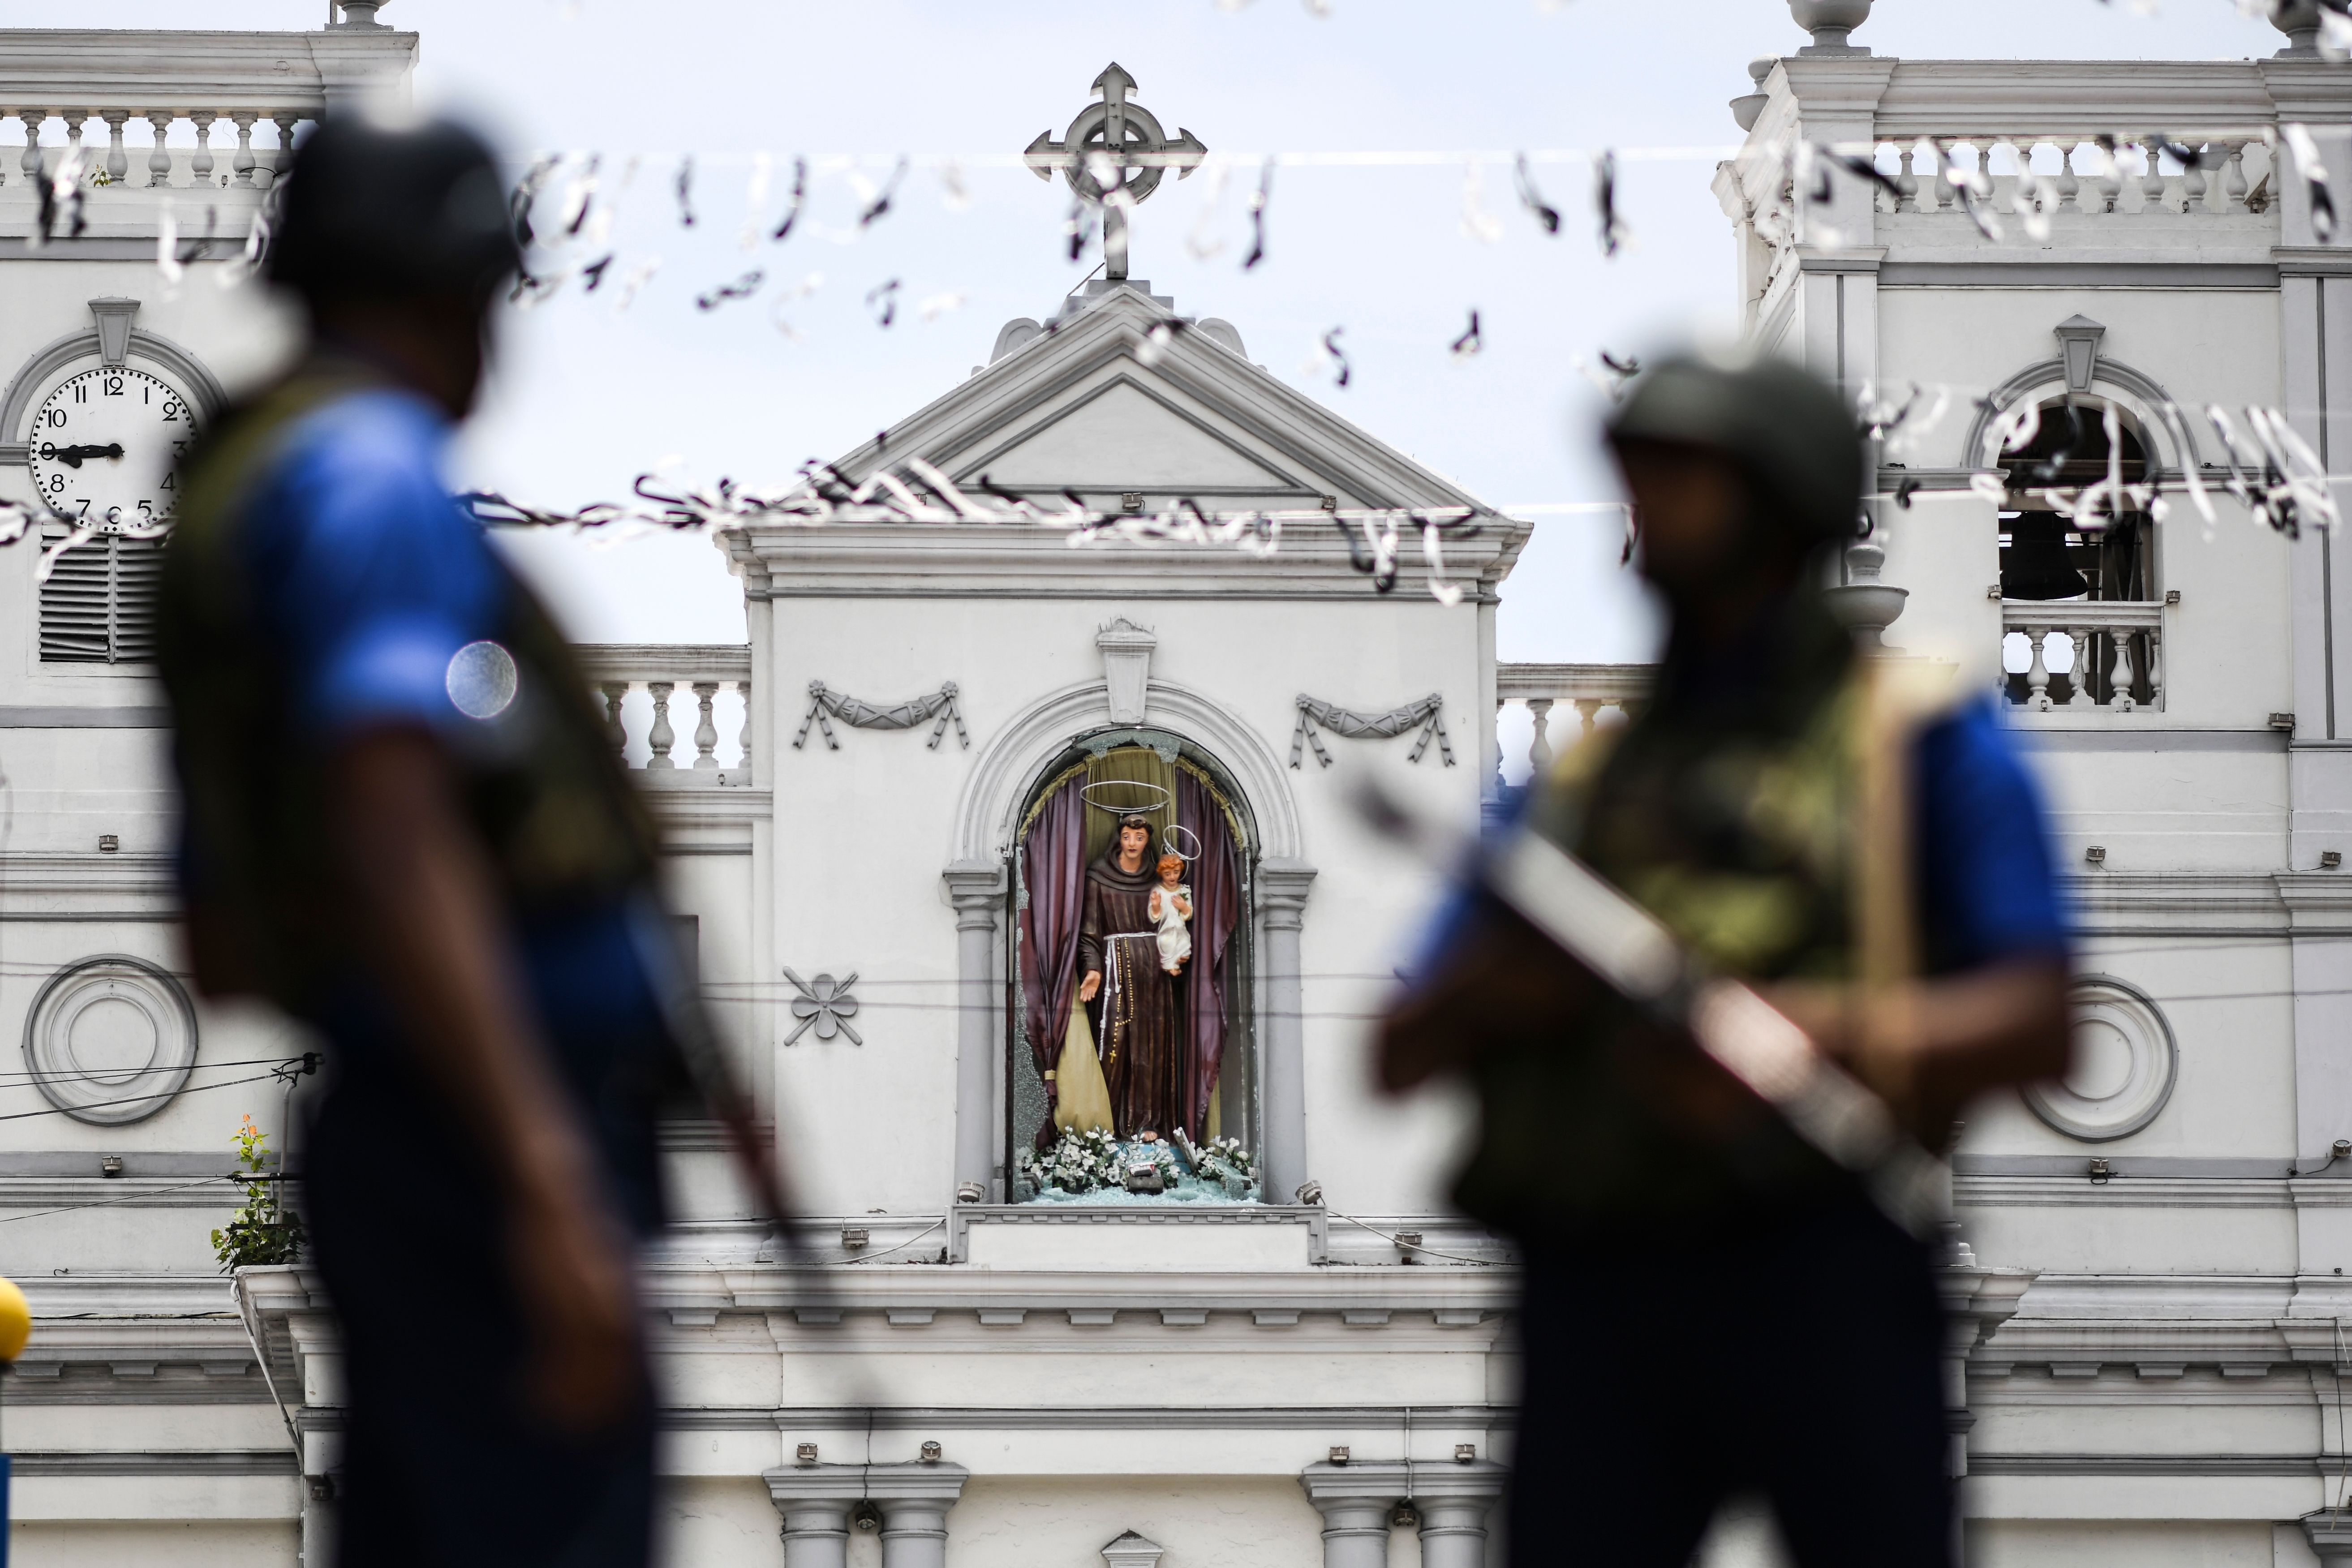 Soldiers stand guard outside St. Anthony's Shrine in Colombo on April 25, 2019, following a series of bomb blasts targeting churches and luxury hotels on the Easter Sunday in Sri Lanka. (JEWEL SAMAD/AFP via Getty Images)